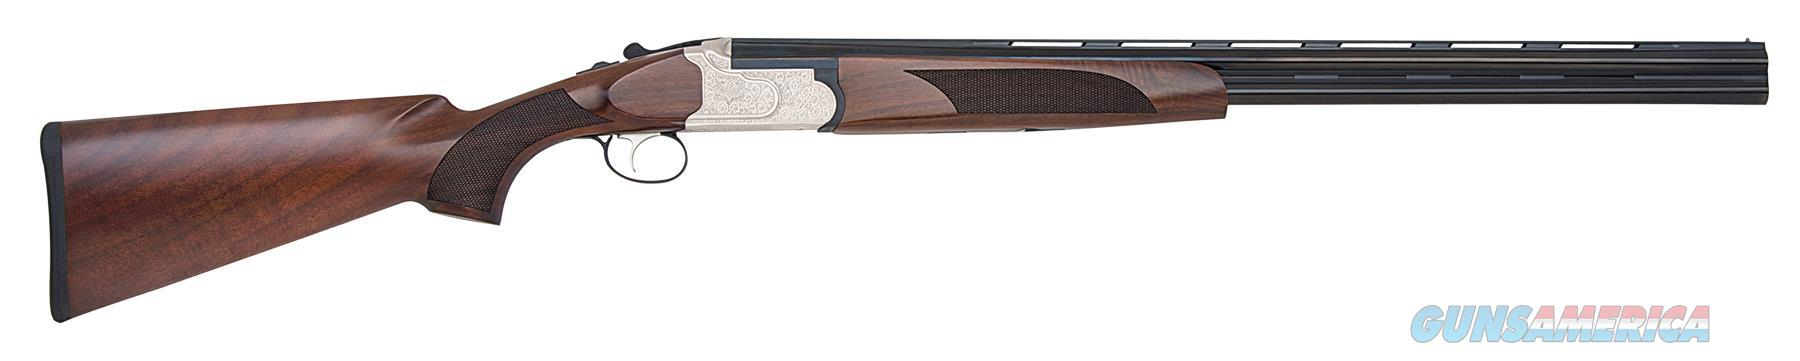 MOSSBERG FIREARMS SILVR RESRVE II 20/26 O/U 75414  Guns > Shotguns > Mossberg Shotguns > Over/Under